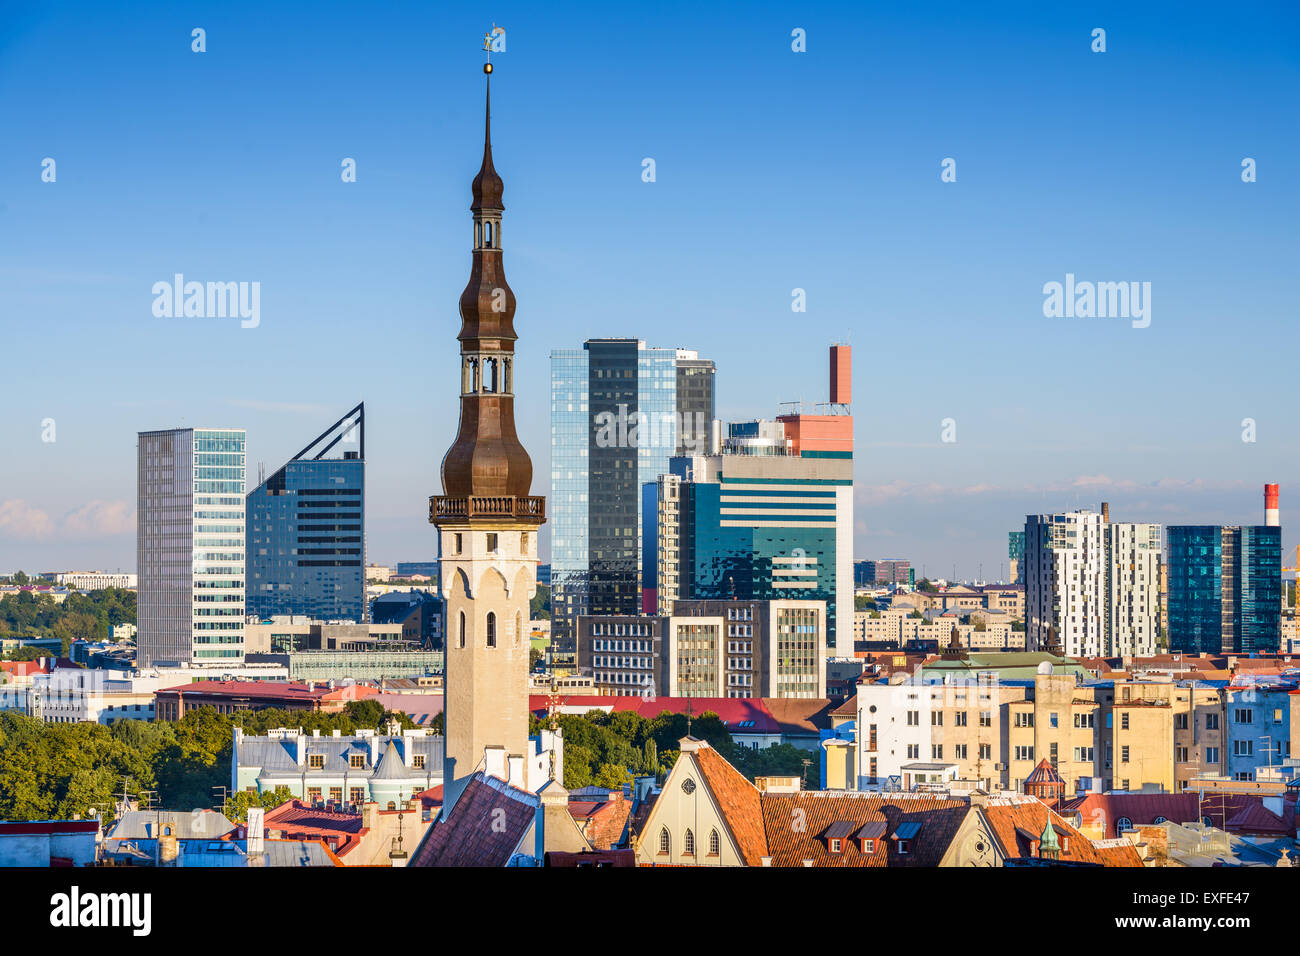 Tallinn, Estonia skyline with modern and historic buildings. - Stock Image